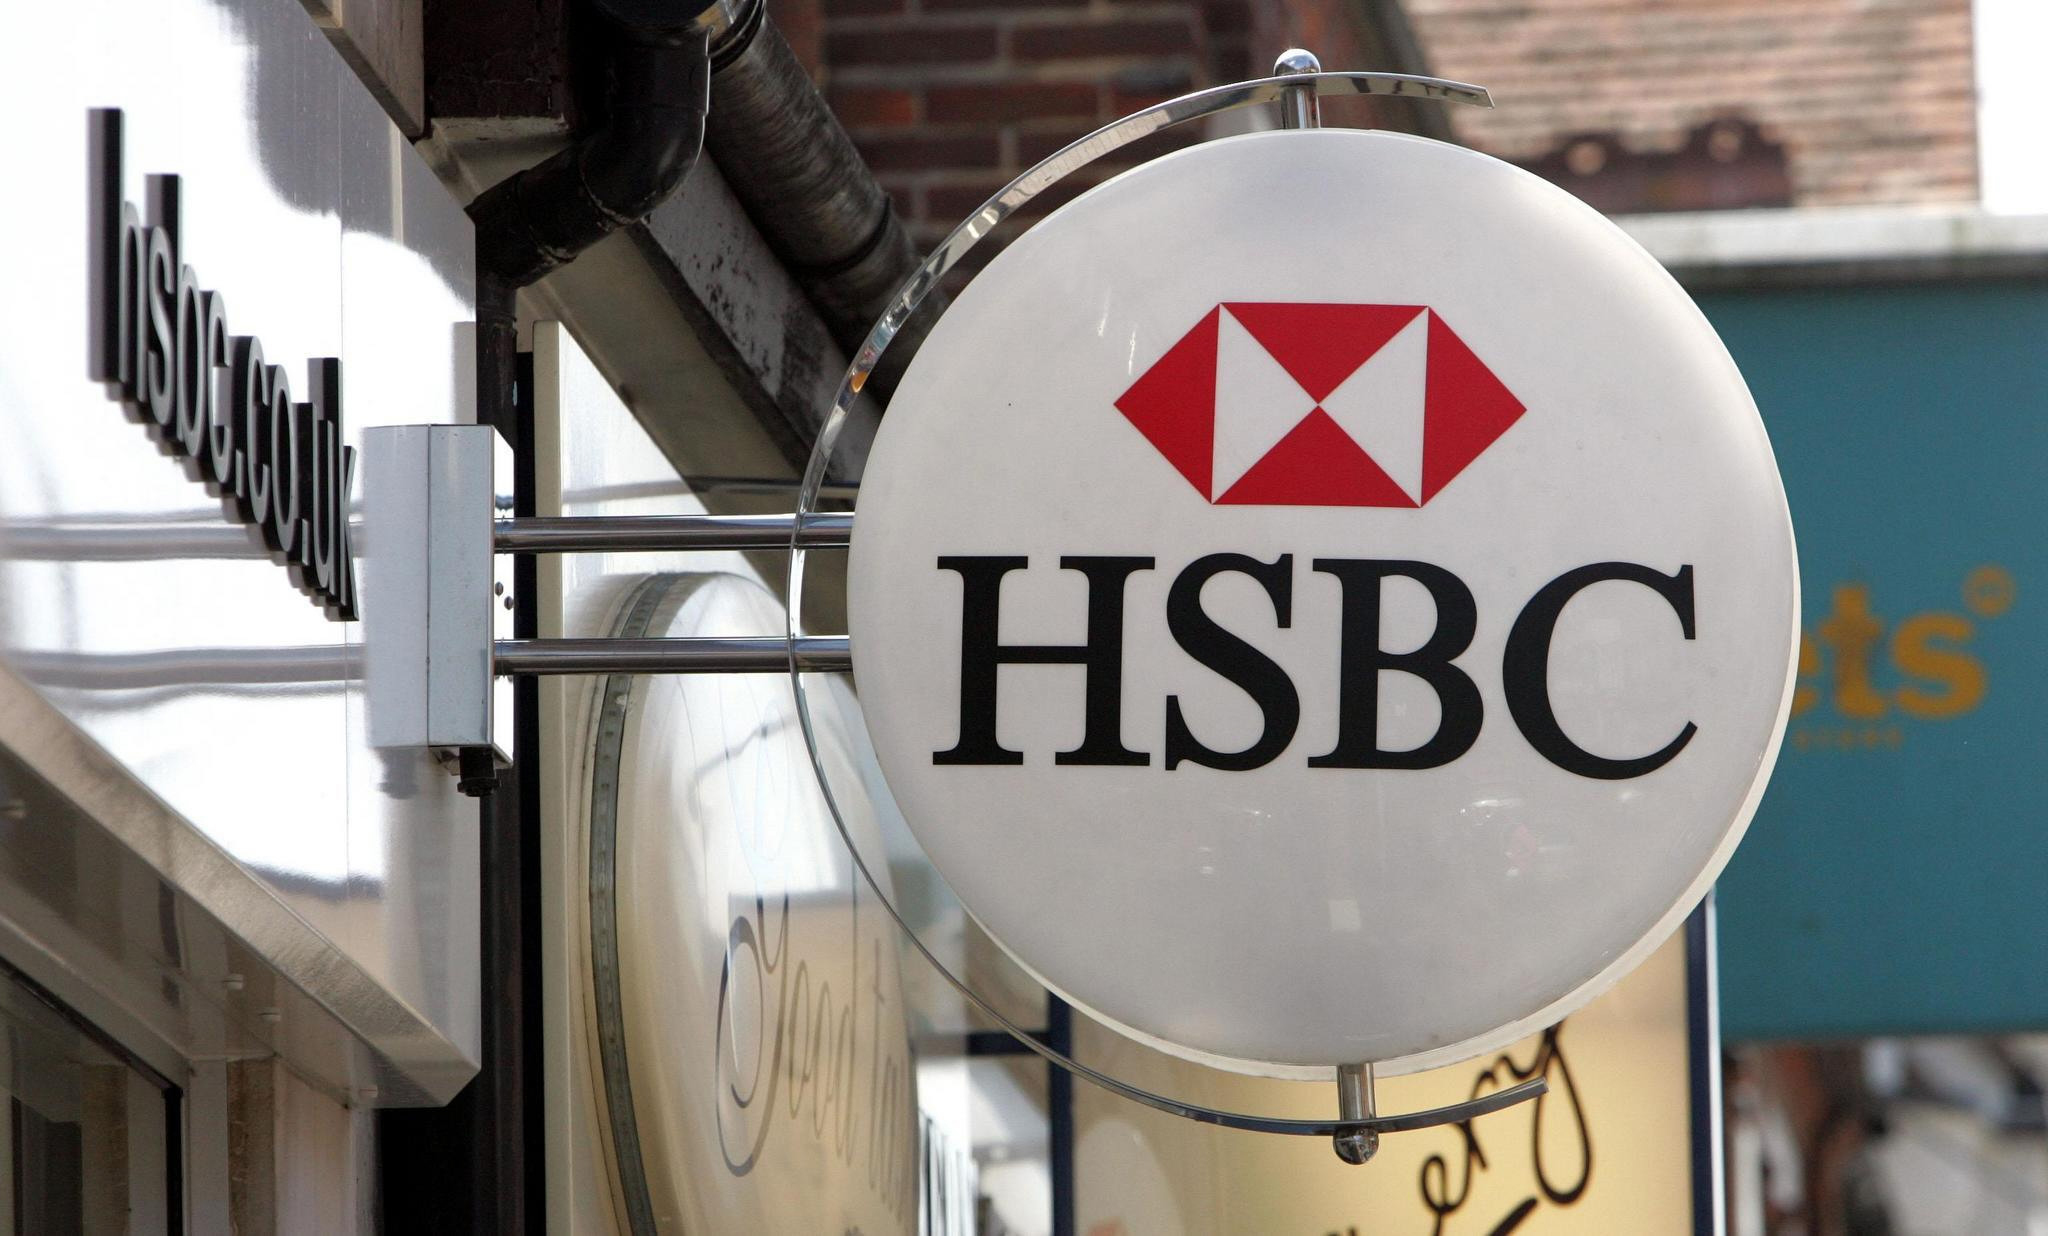 HSBC could close down the accounts of customers who refuse to wear face masks